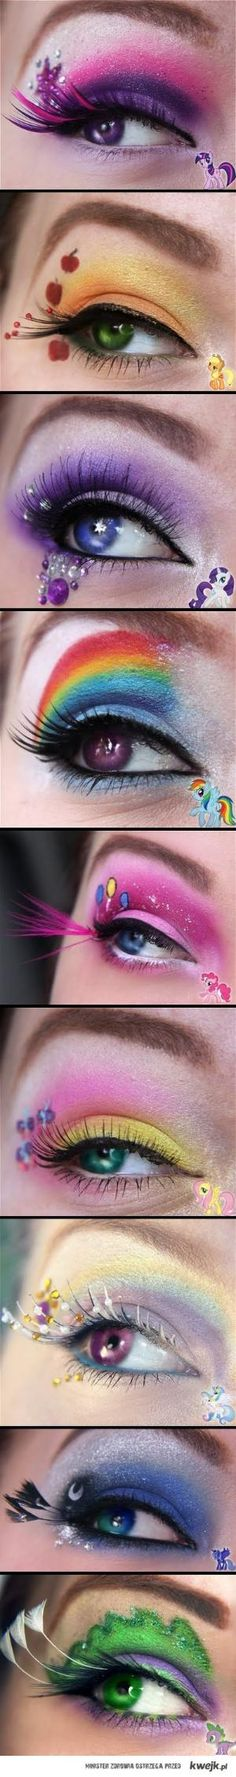 These are so flipping cute! #beautifuleyes #eyemake-up by lilian22